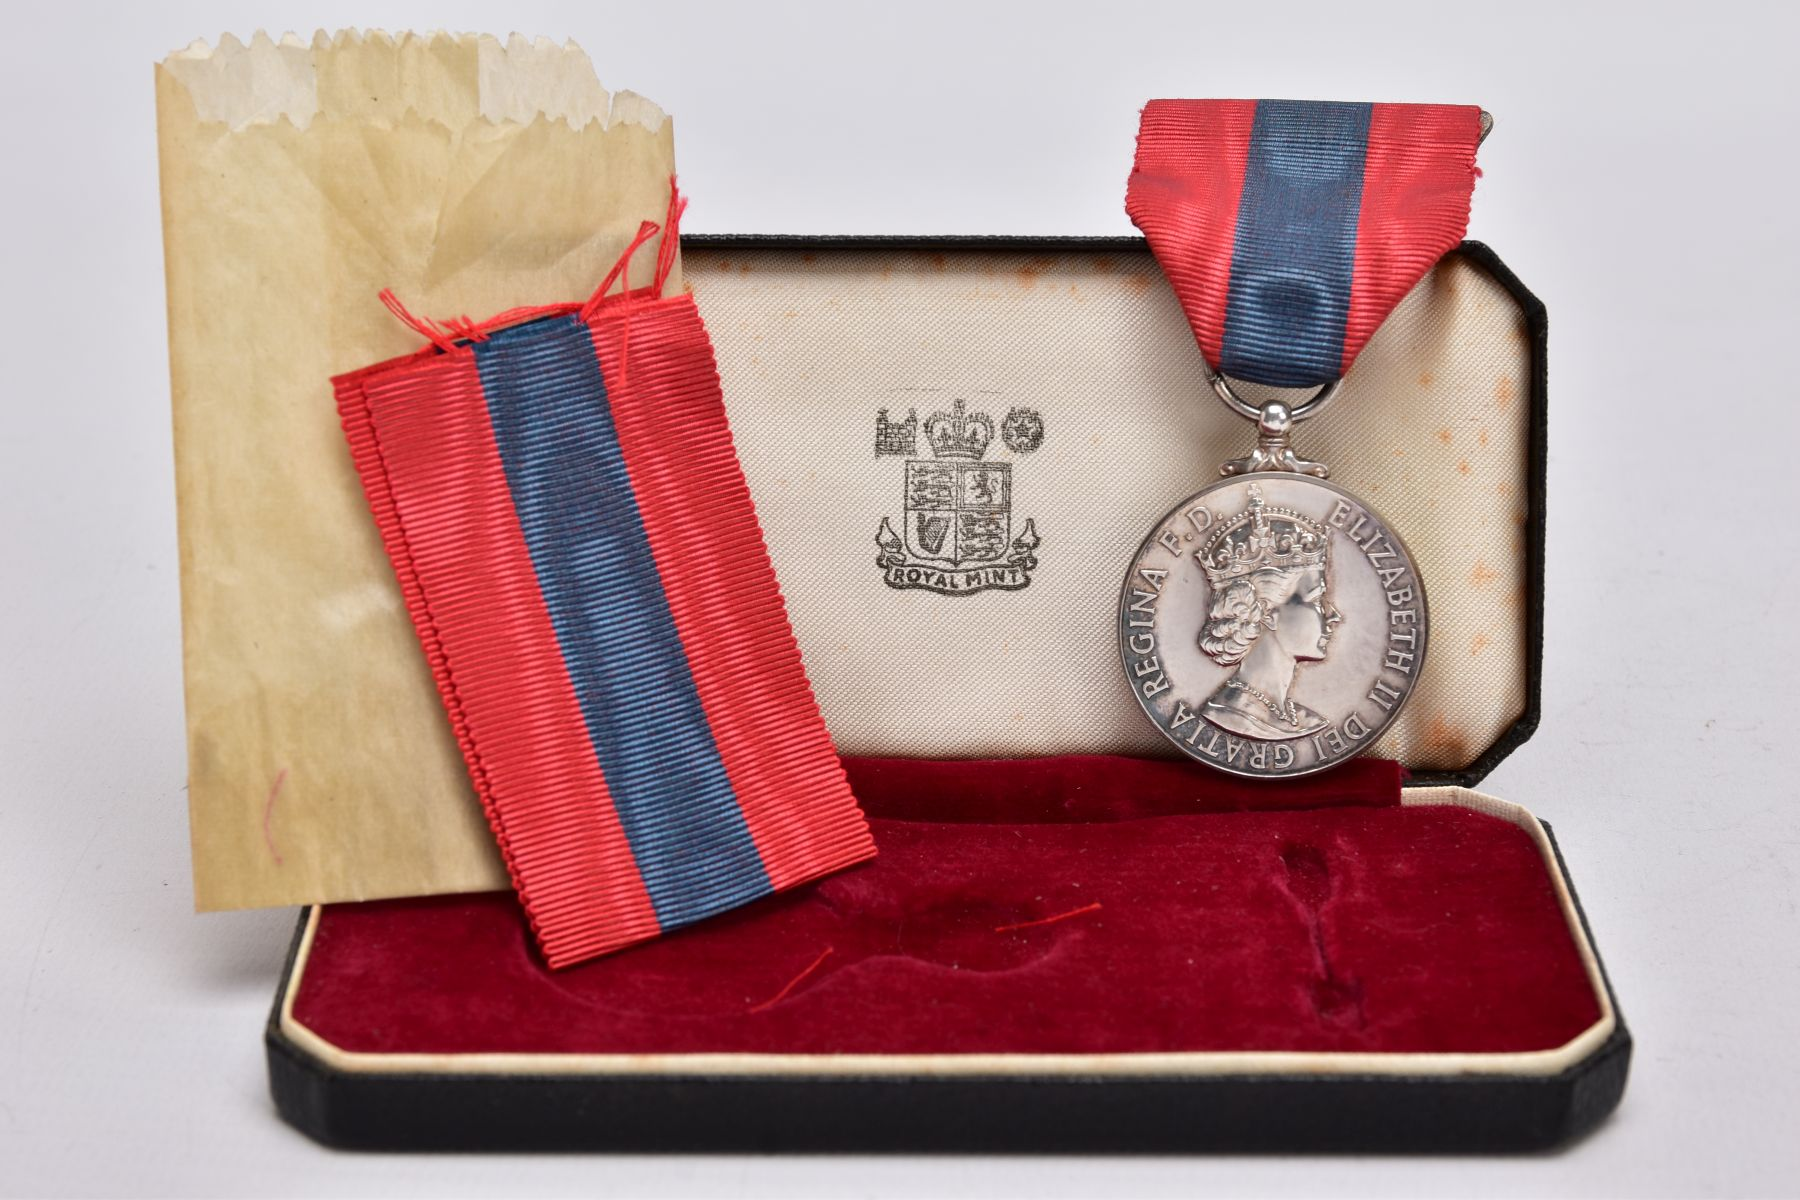 A BOXED ROYAL MINT IMPERIAL SERVICE MEDAL named to Hubert Martin, ERII Dei-Gratia 1955 version - Image 3 of 4